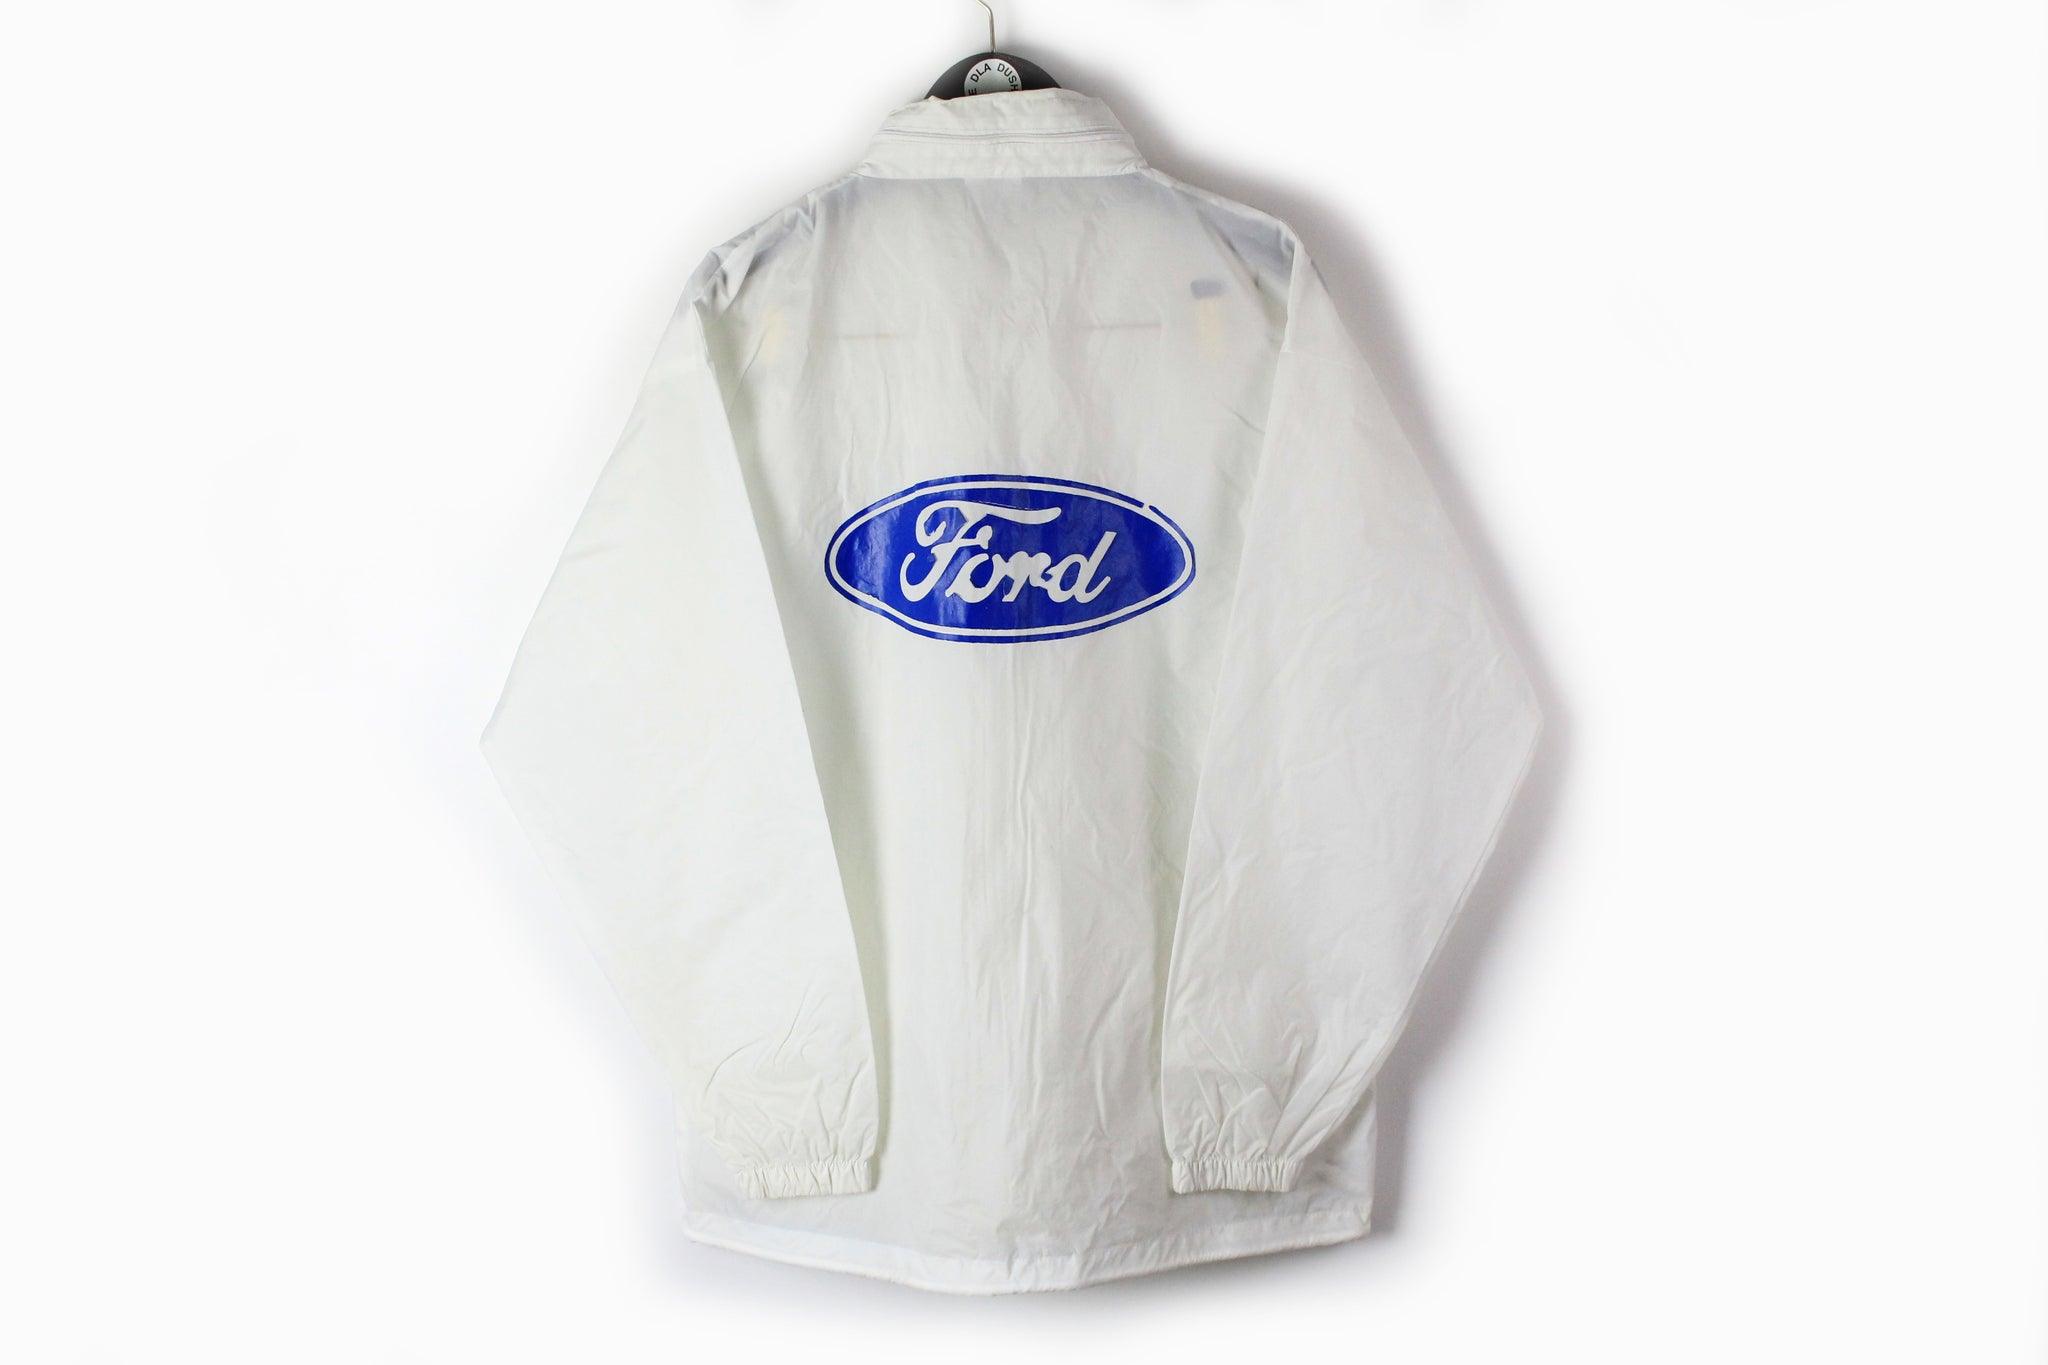 Vintage Ford Jacket Large white big logo blue 90s sport car USA style full zip light wear